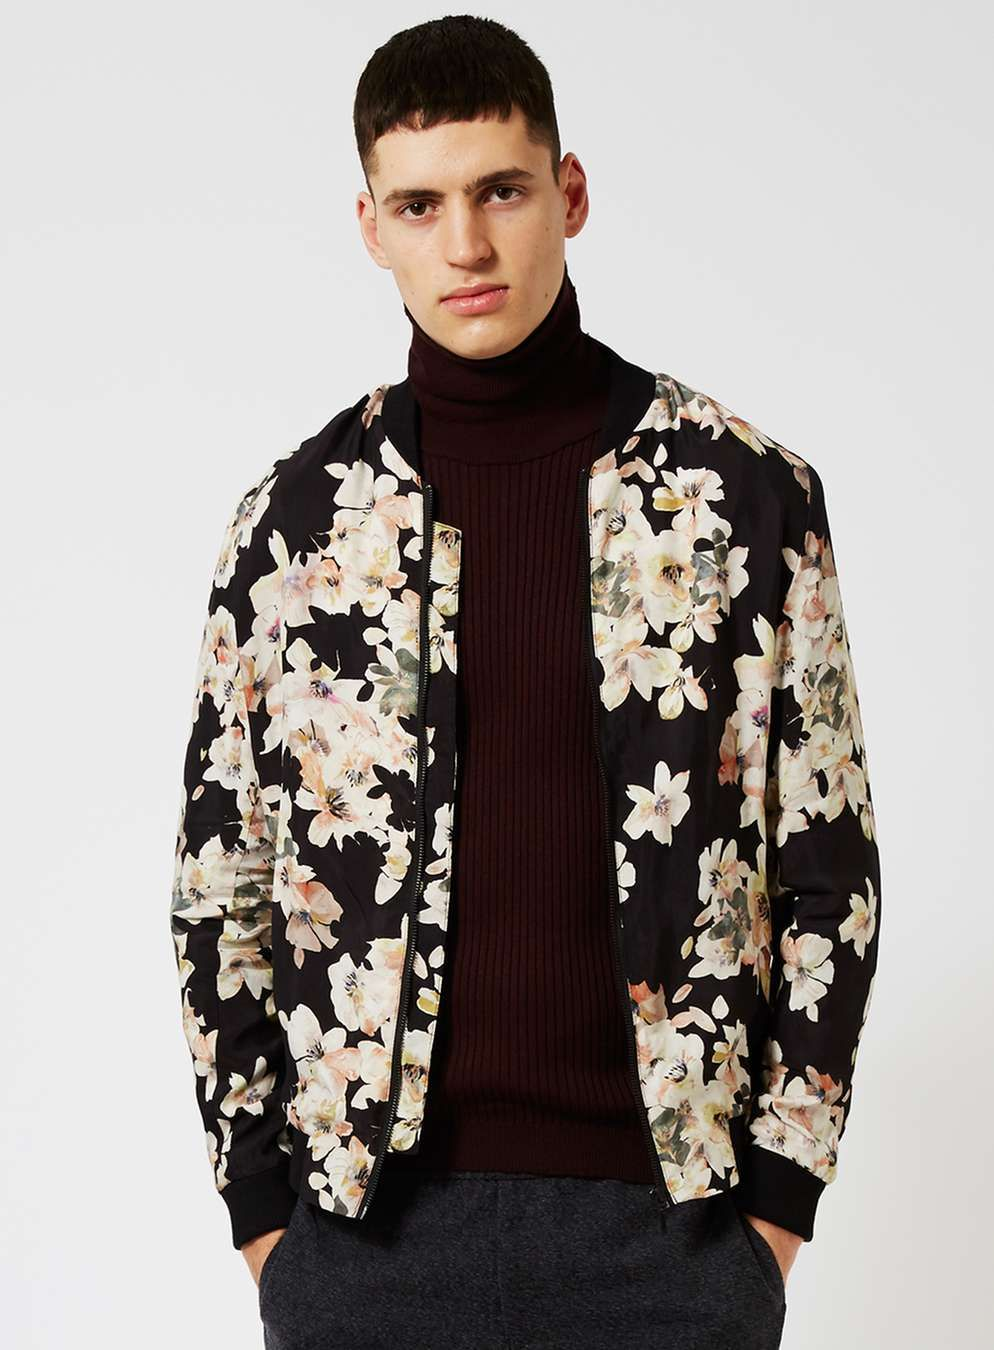 c1be0484902 Black Watercolour Floral Print Smart Bomber Jacket - View All Clearance -  Clearance - TOPMAN